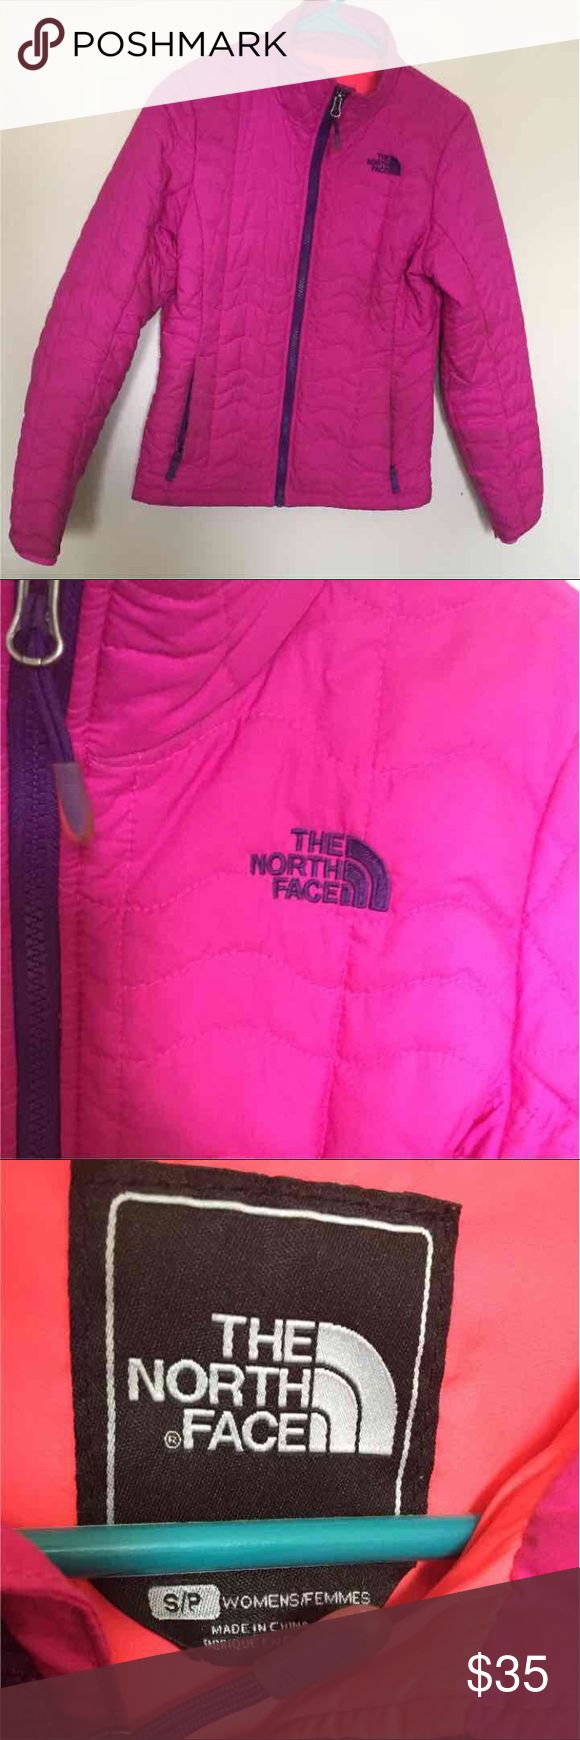 Pink Authentic North Face light jacket Pink North Face jacket light weight used but still in good condition. Wouldn't hurt to dry clean it. Wrist color sturdy. Back and from hook still intact. Logos still fresh. Stitching still tight North Face Jackets & Coats